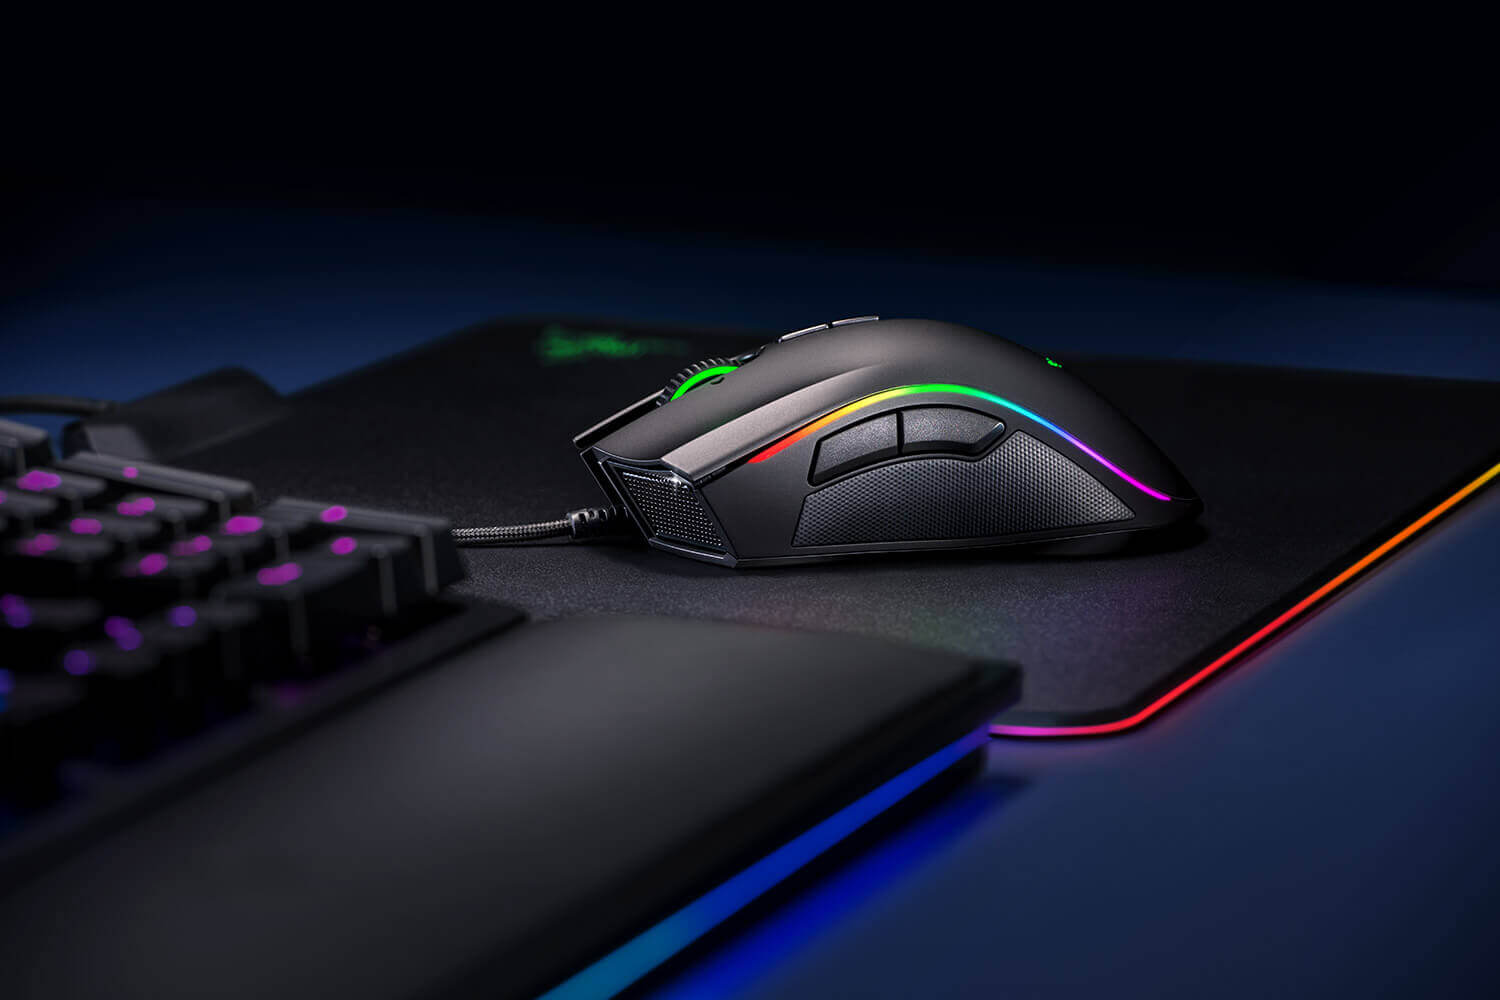 Gaming Mice Are Excellent For Work And Play